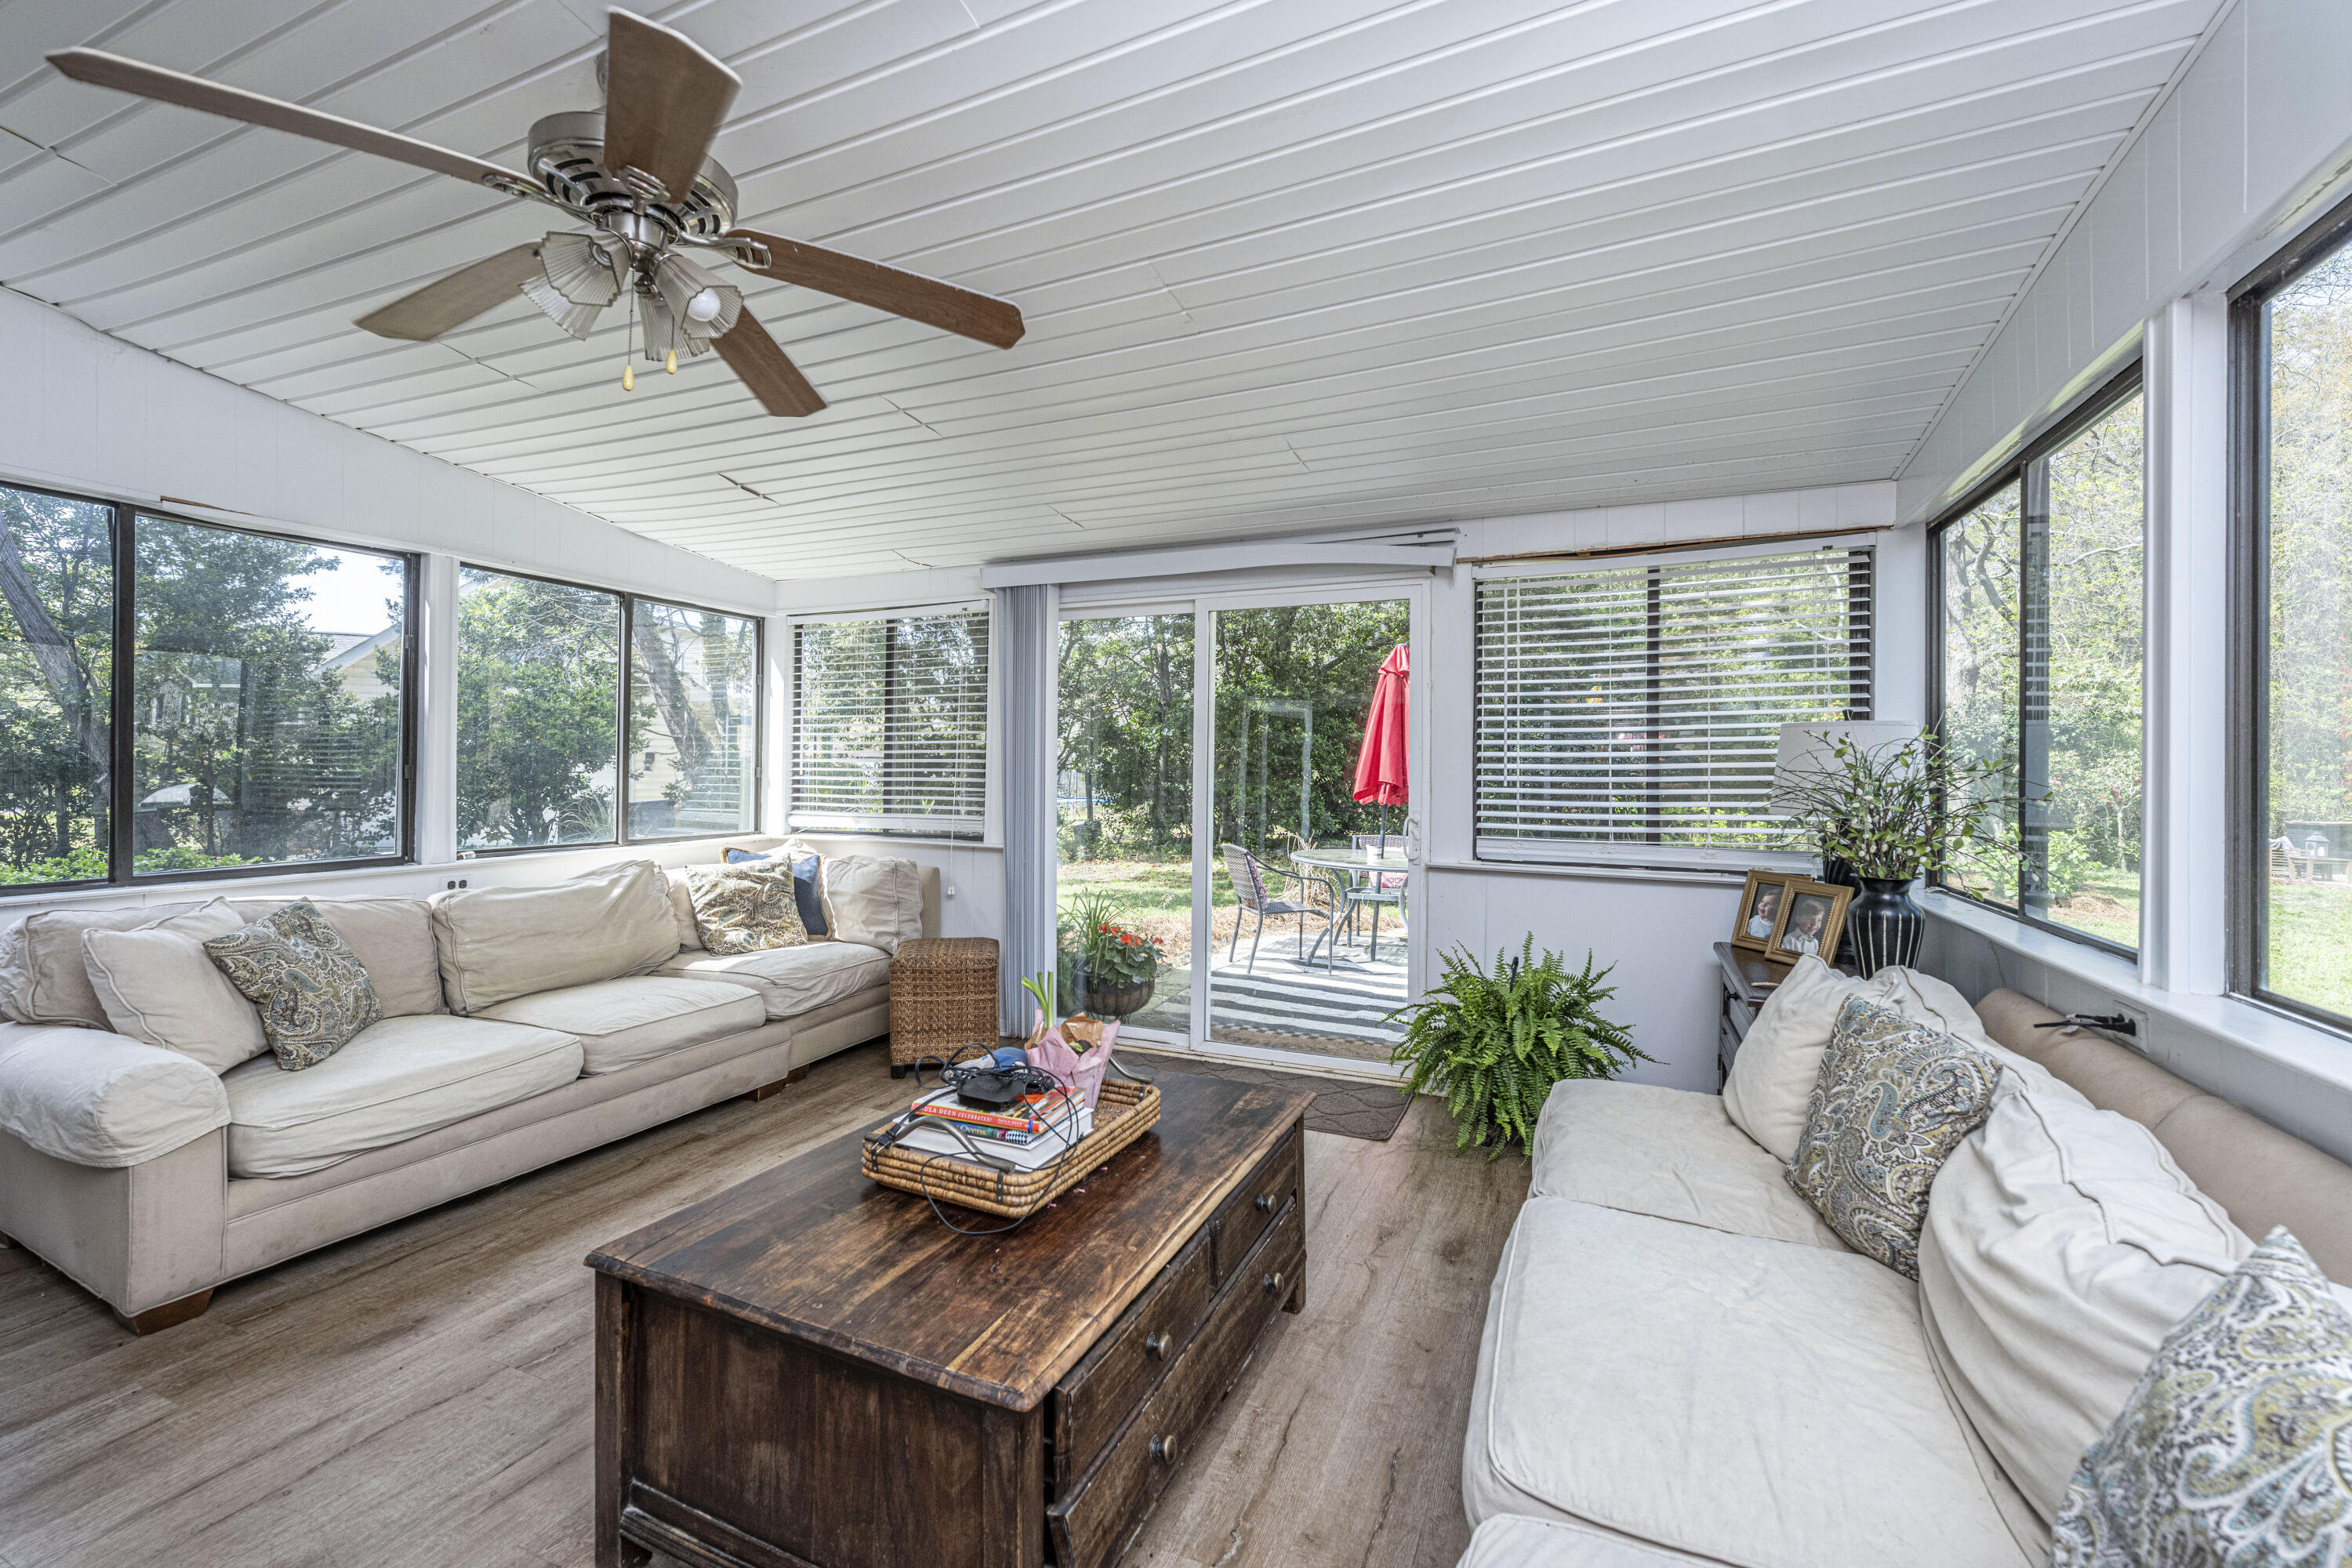 Stiles Point Homes For Sale - 775 Sparrow, Charleston, SC - 24